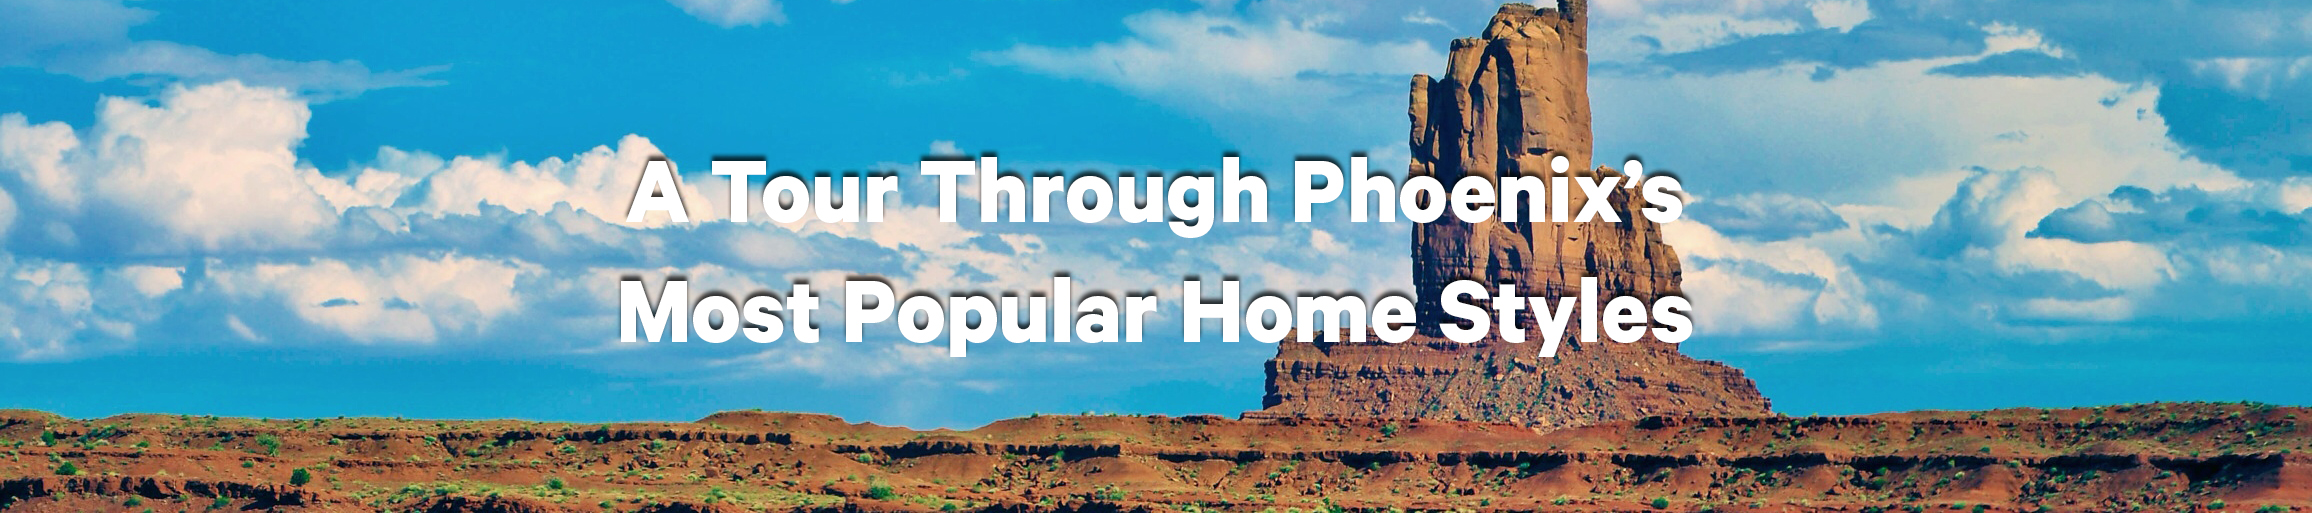 Read news about the Phoenix market to prepare your house flipping business plan for climbing prices.